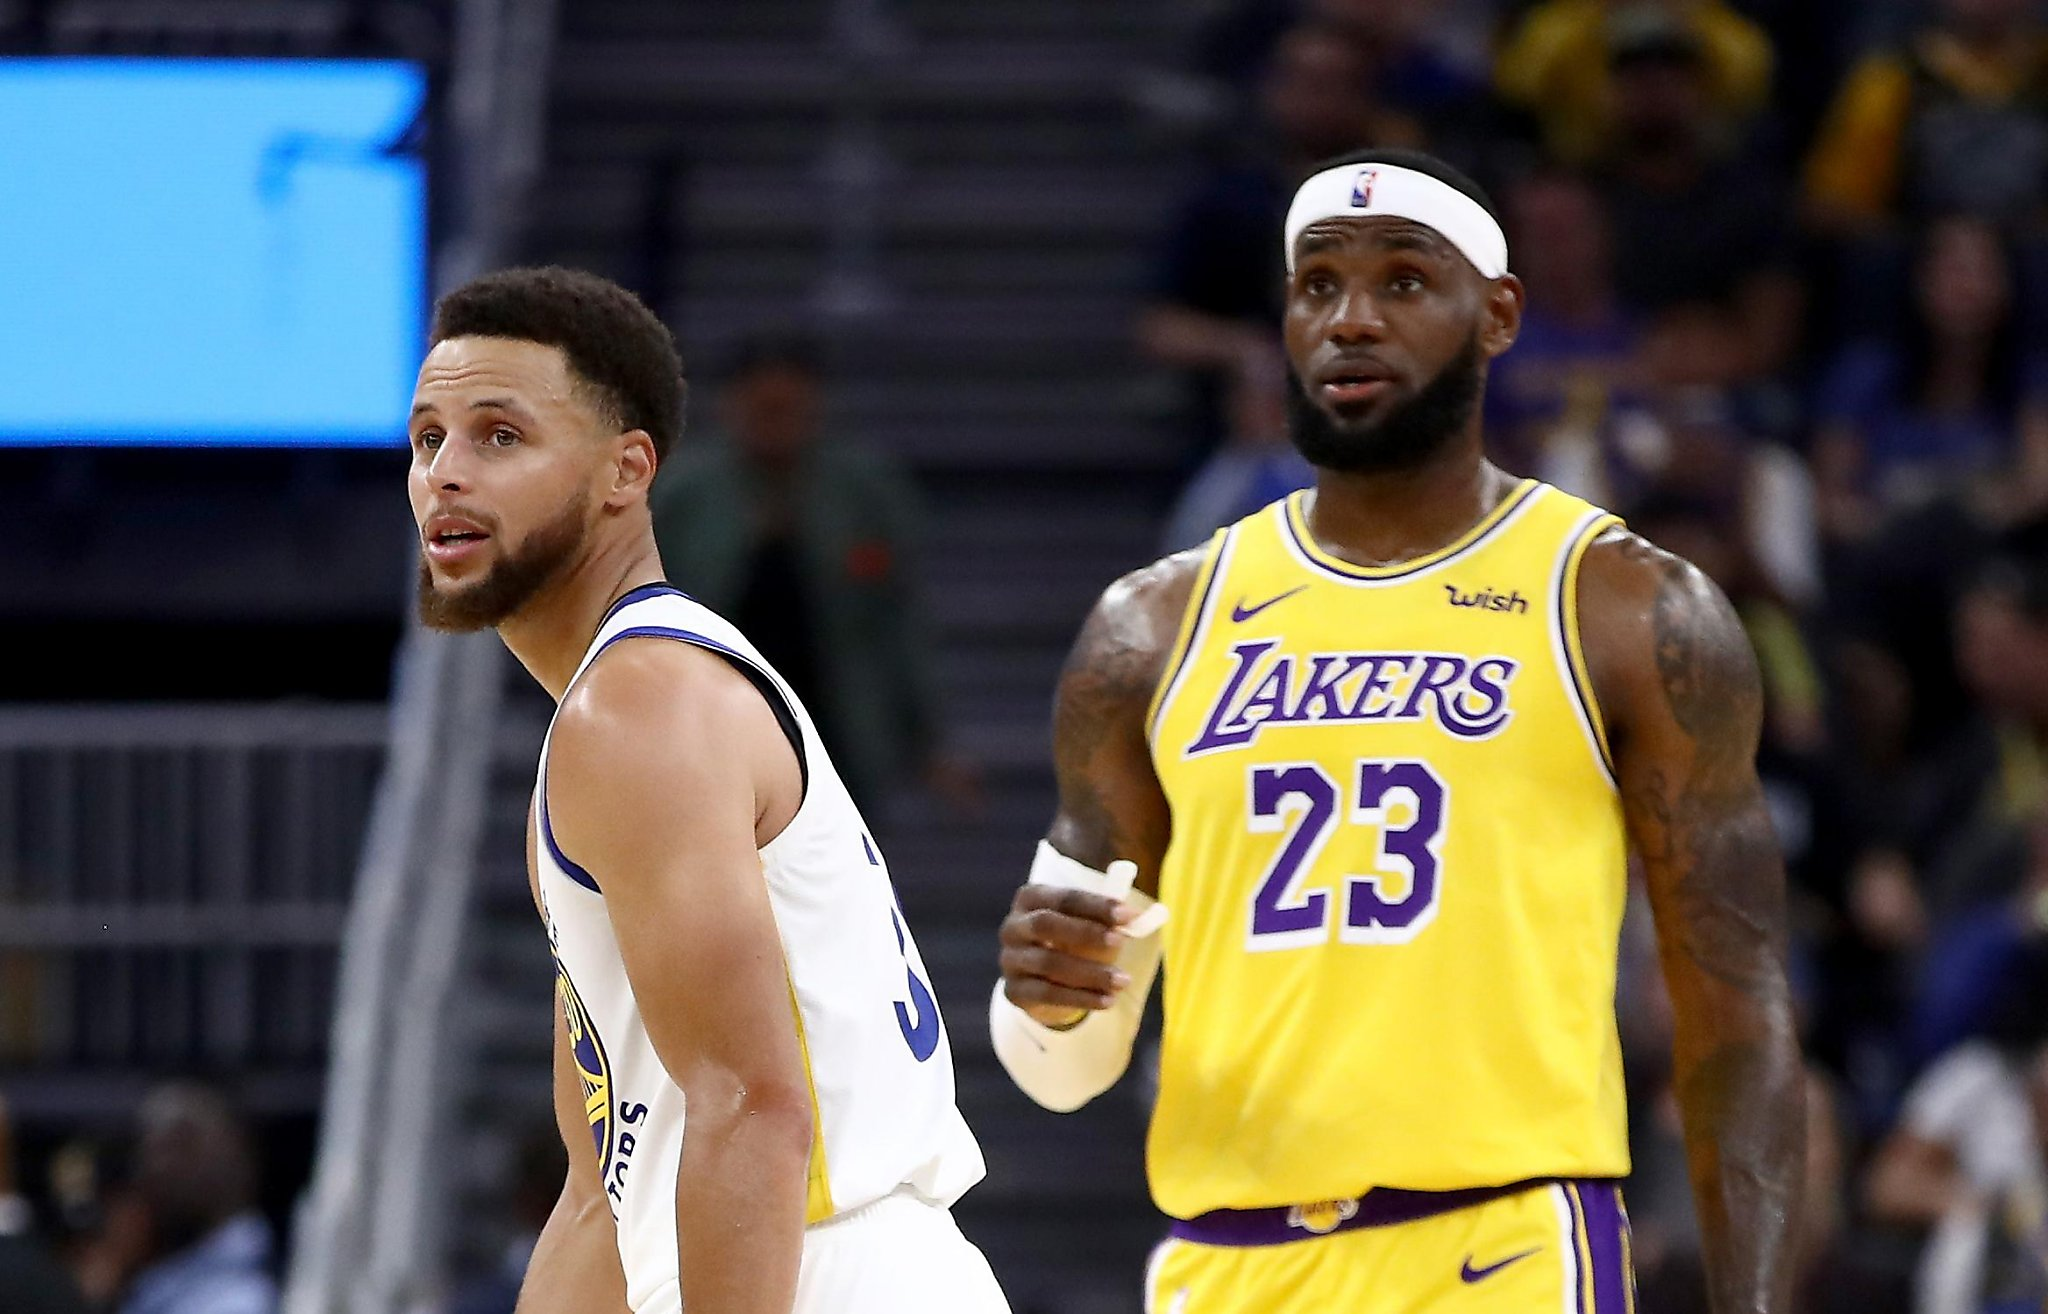 Get your popcorn ready: Steph Curry and LeBron James team up for first time